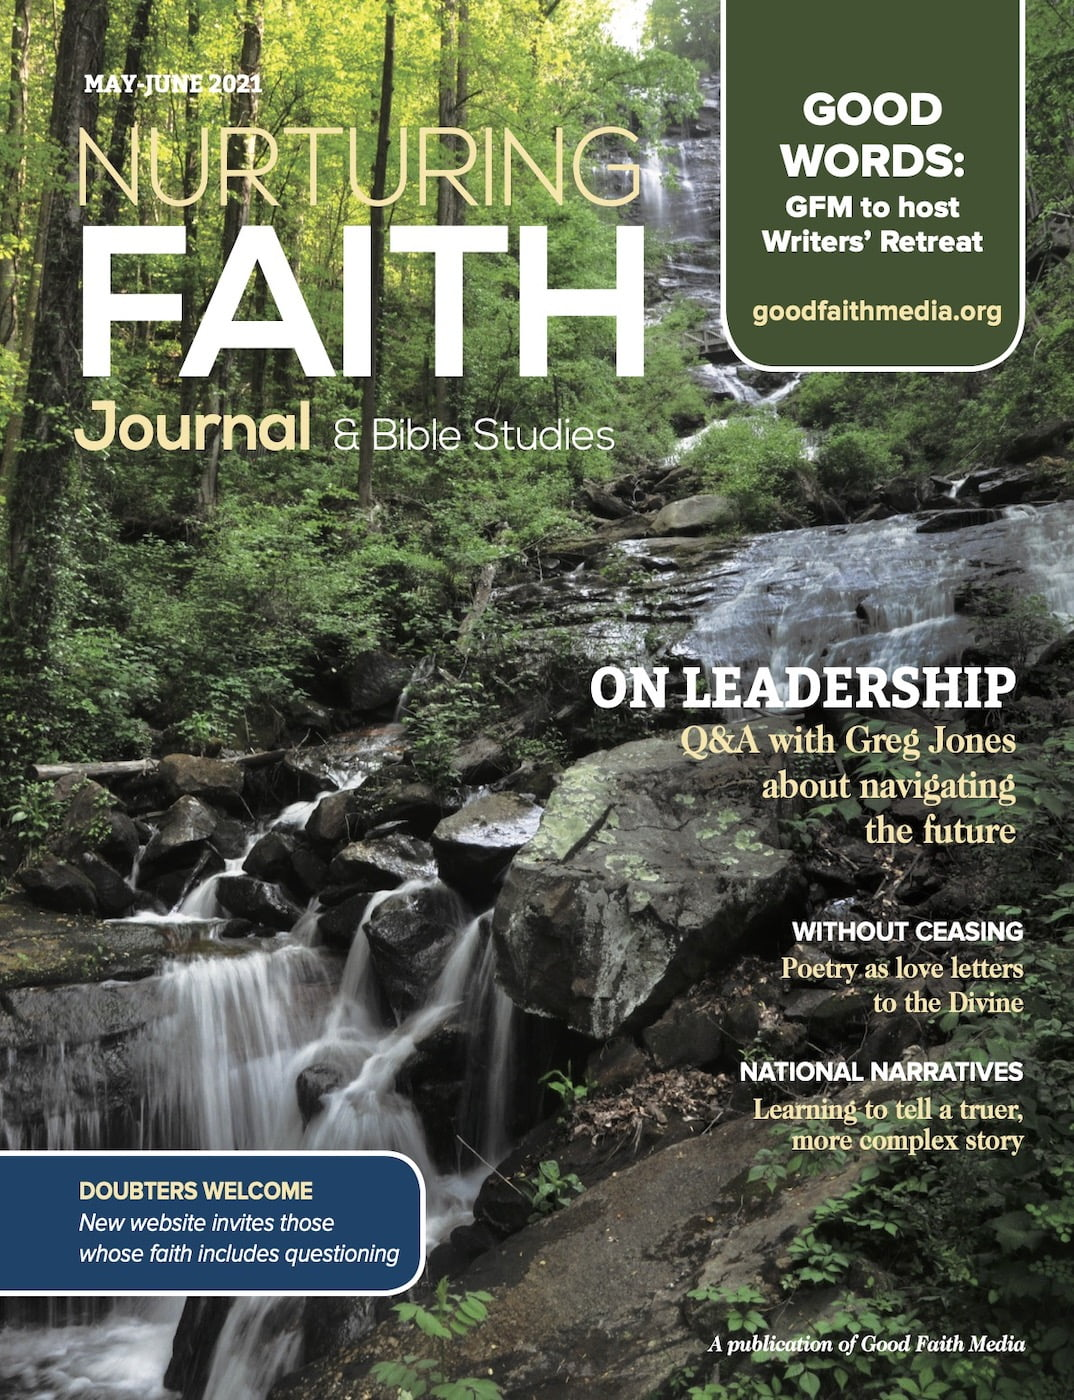 May-June 2021 cover of Nurturing Faith Journal